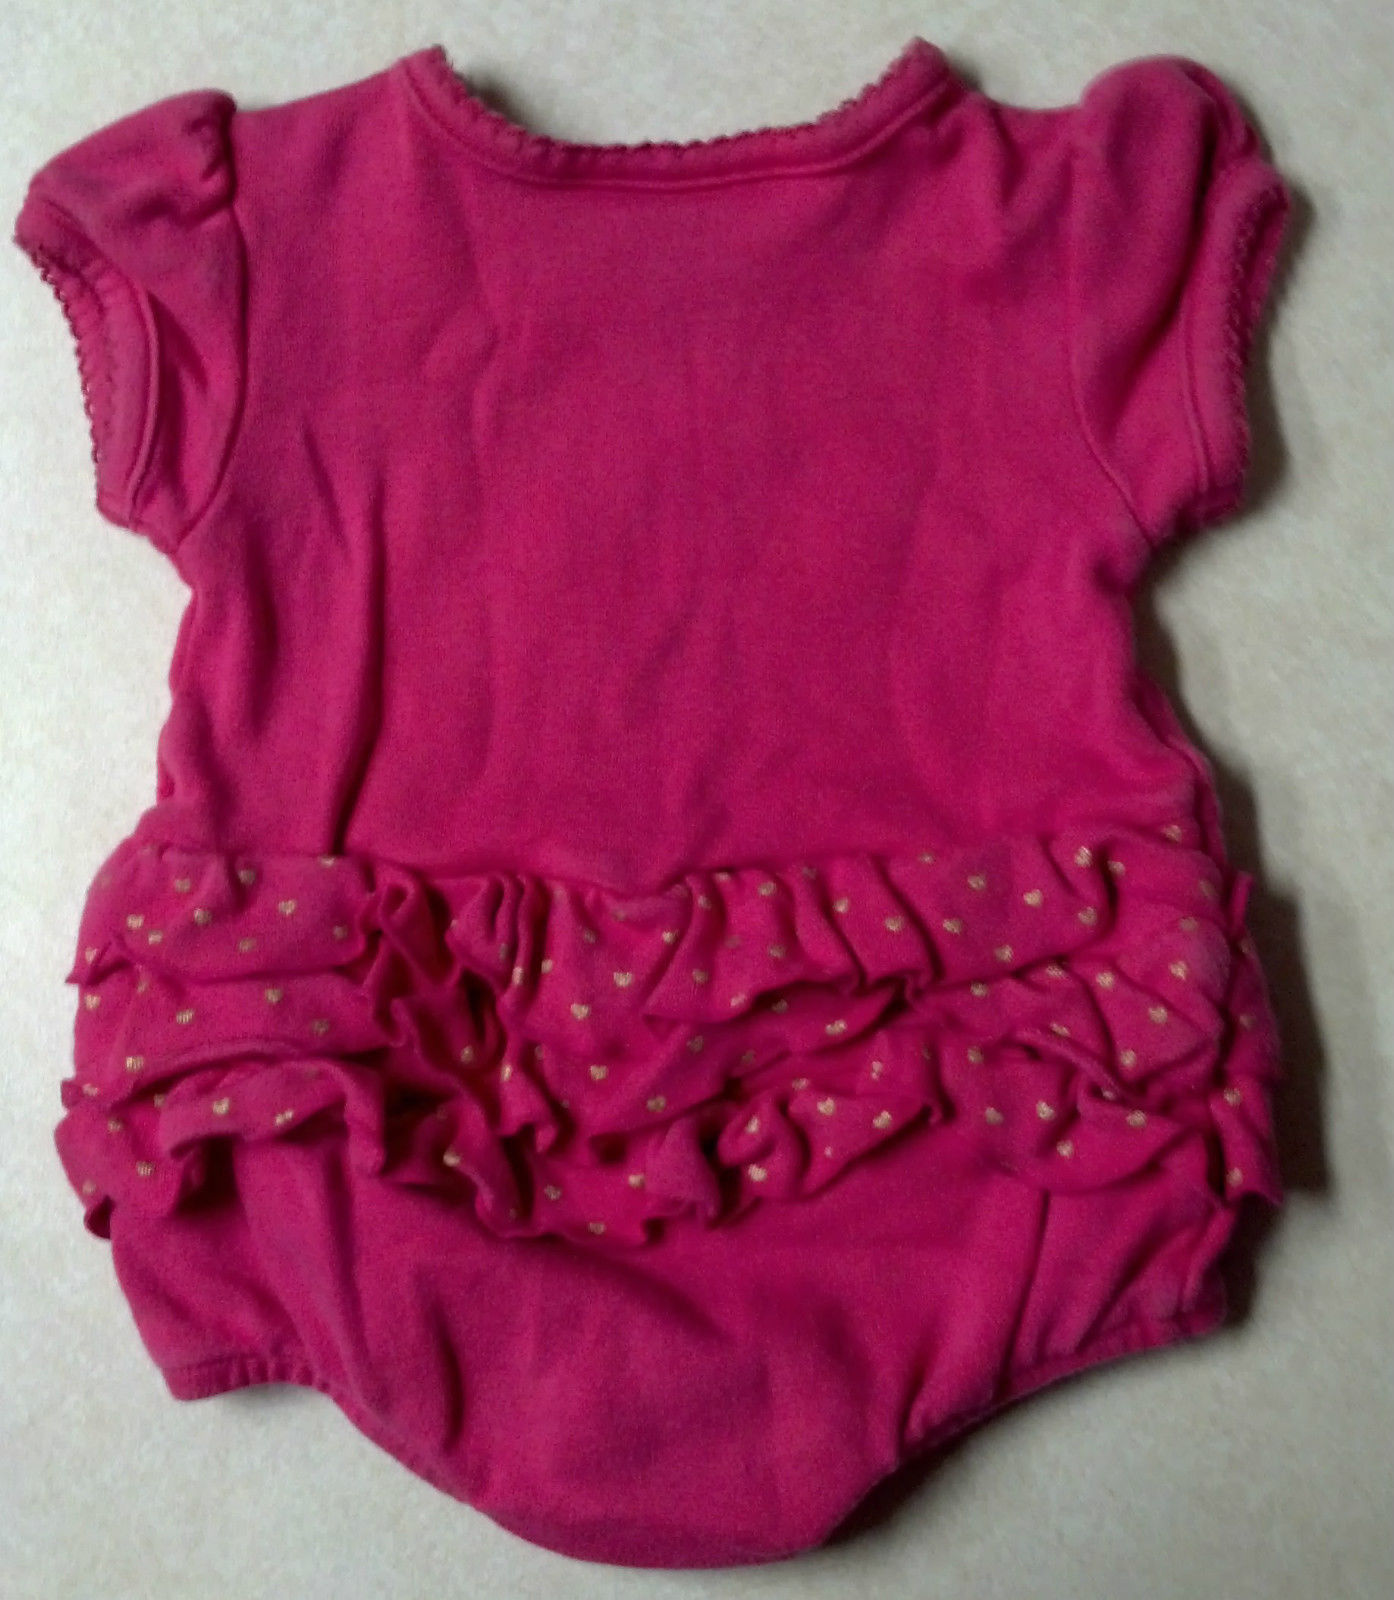 Girl's Sz 3-6 M Months One Pc Koala Baby Outfit Pink W/ Gold Sweetheart Ruffles